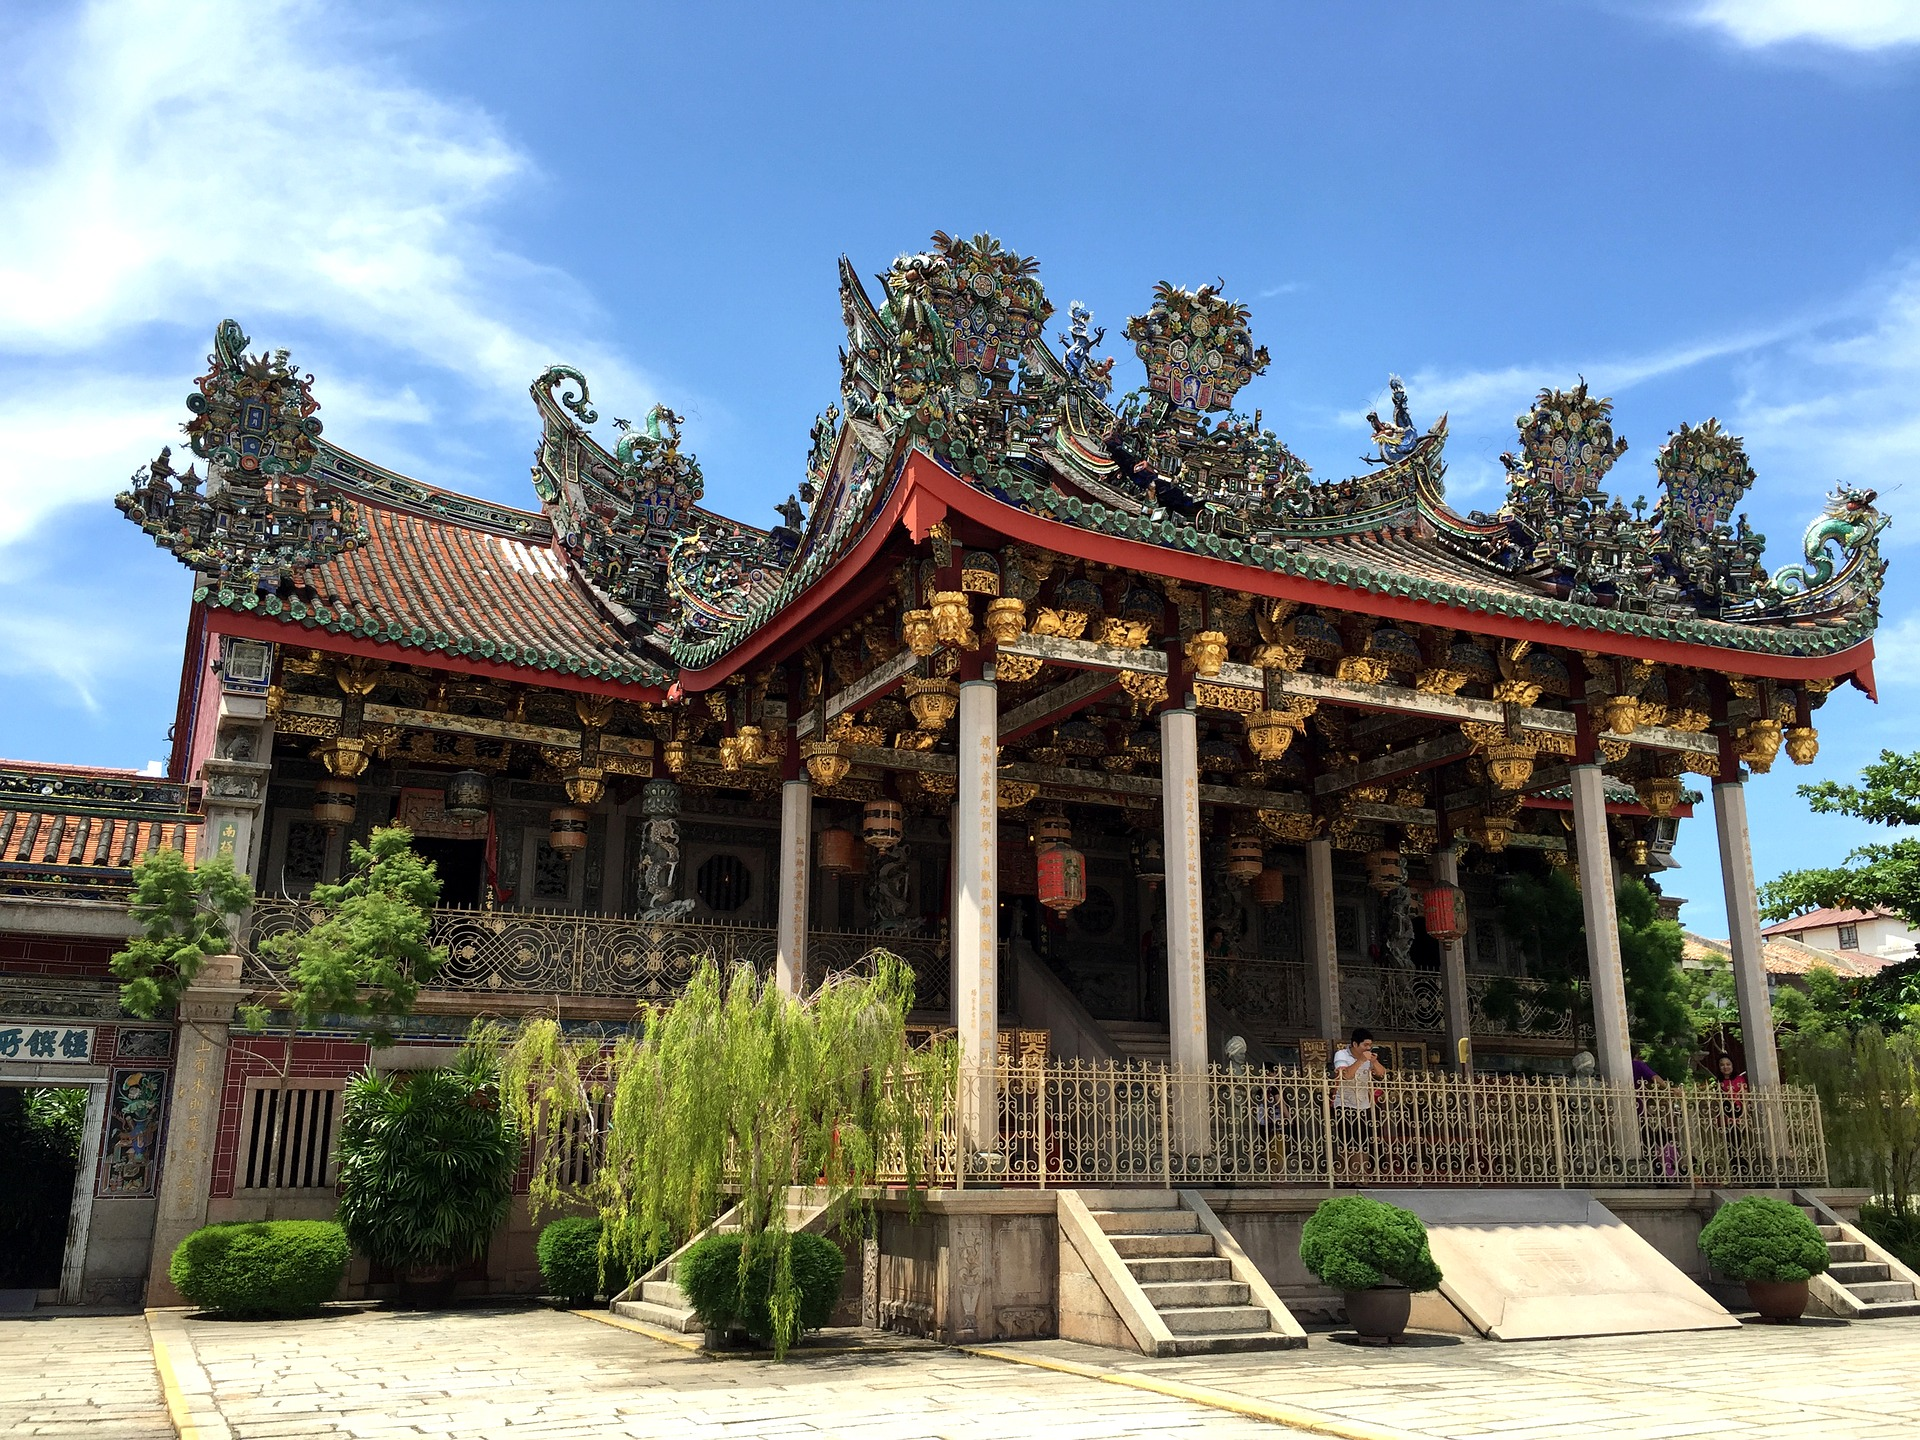 Khoo Kongsi is one of Penang's most intricately-decorated buildings.